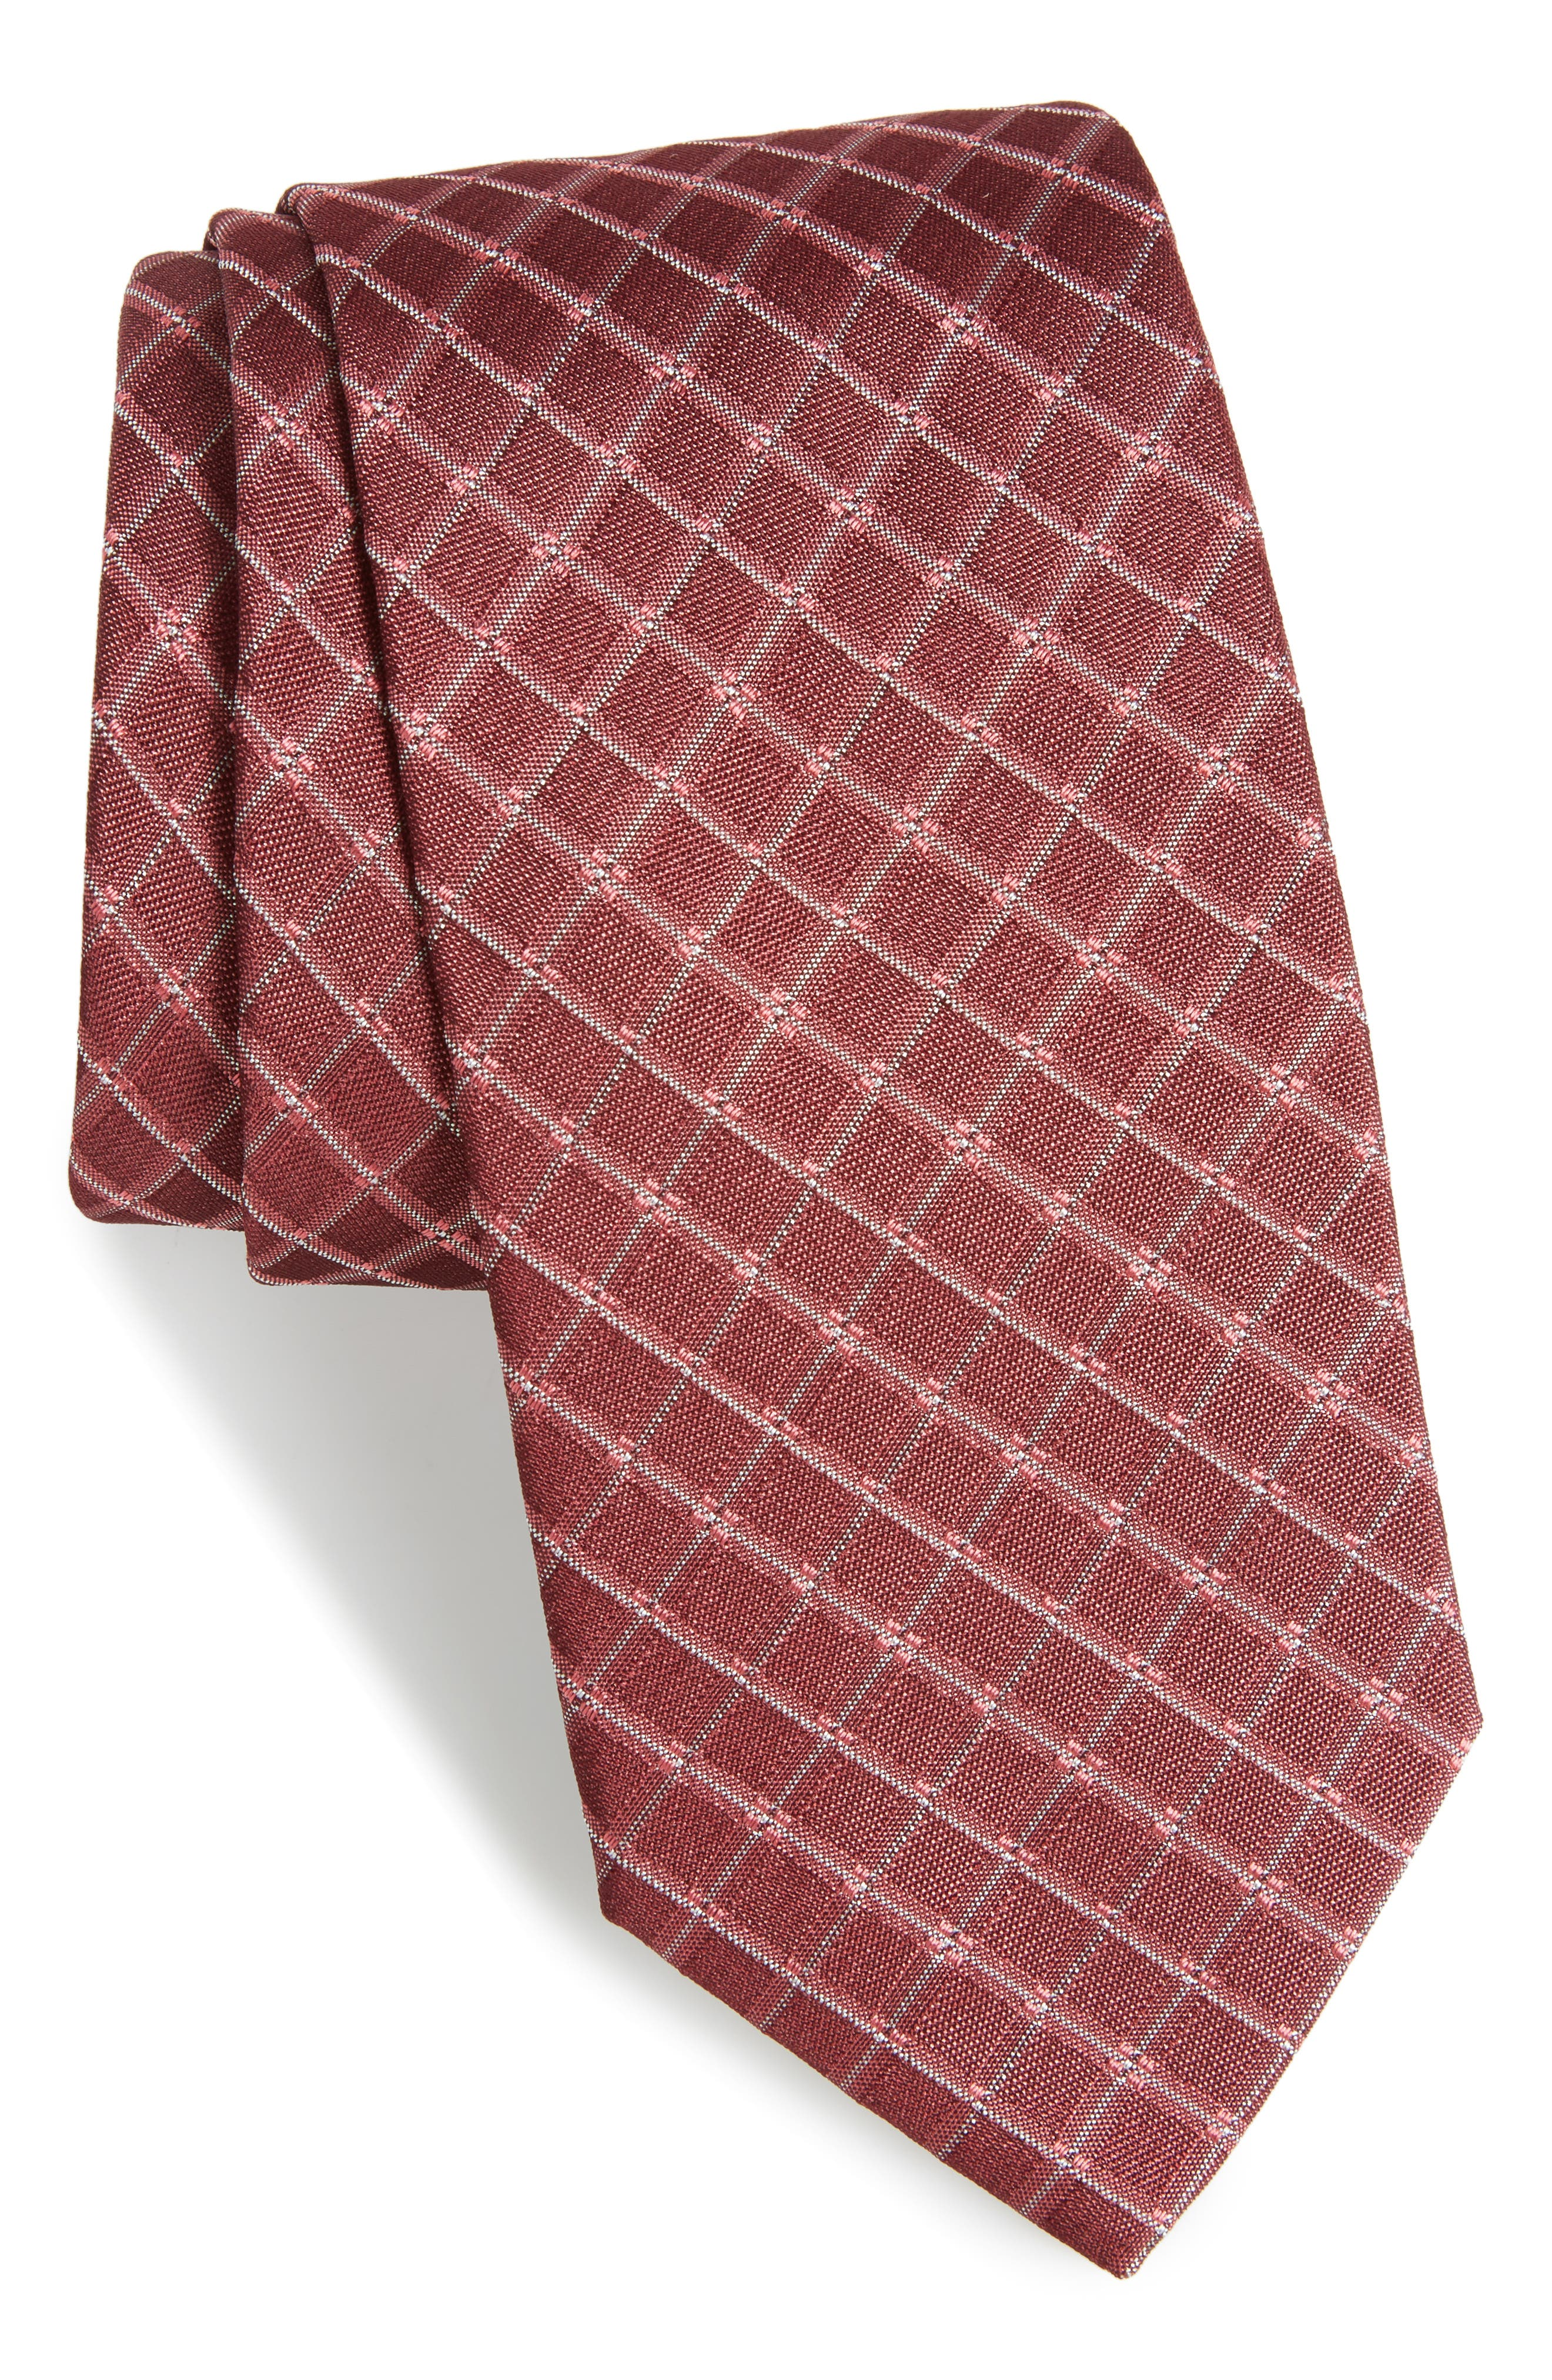 Main Image - BOSS Plaid Silk Skinny Tie